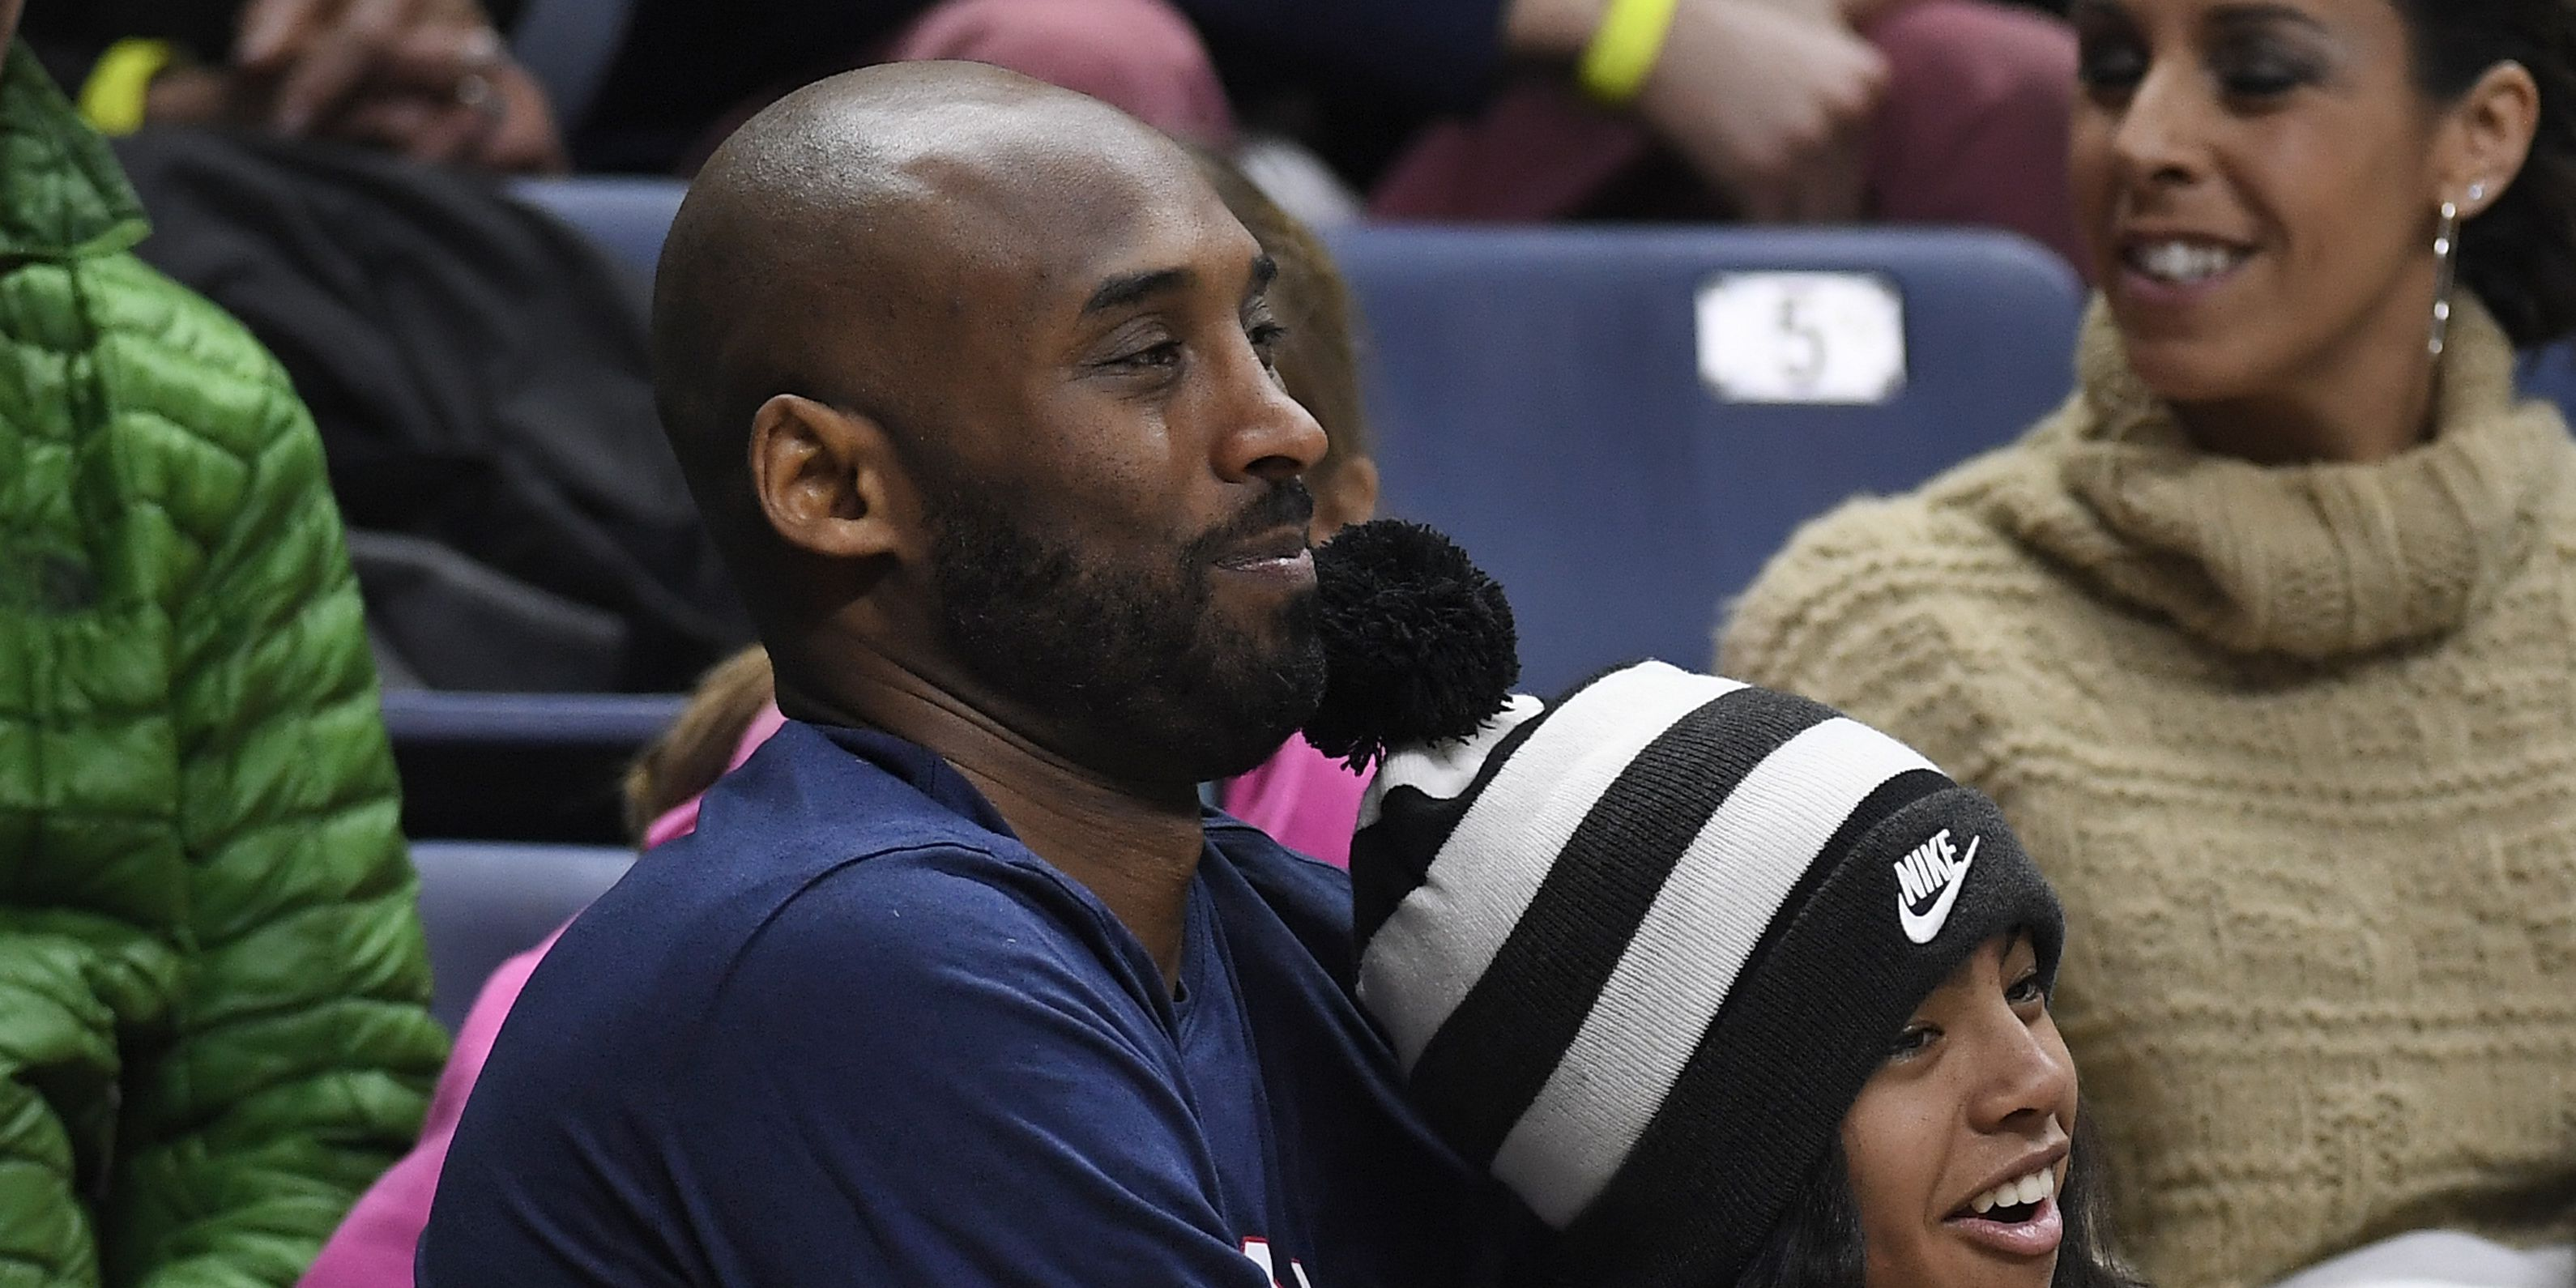 Cleveland reacts to death of NBA legend Kobe Bryant and his 13-year-old daughter from helicopter crash in Calabasas, CA, reports say